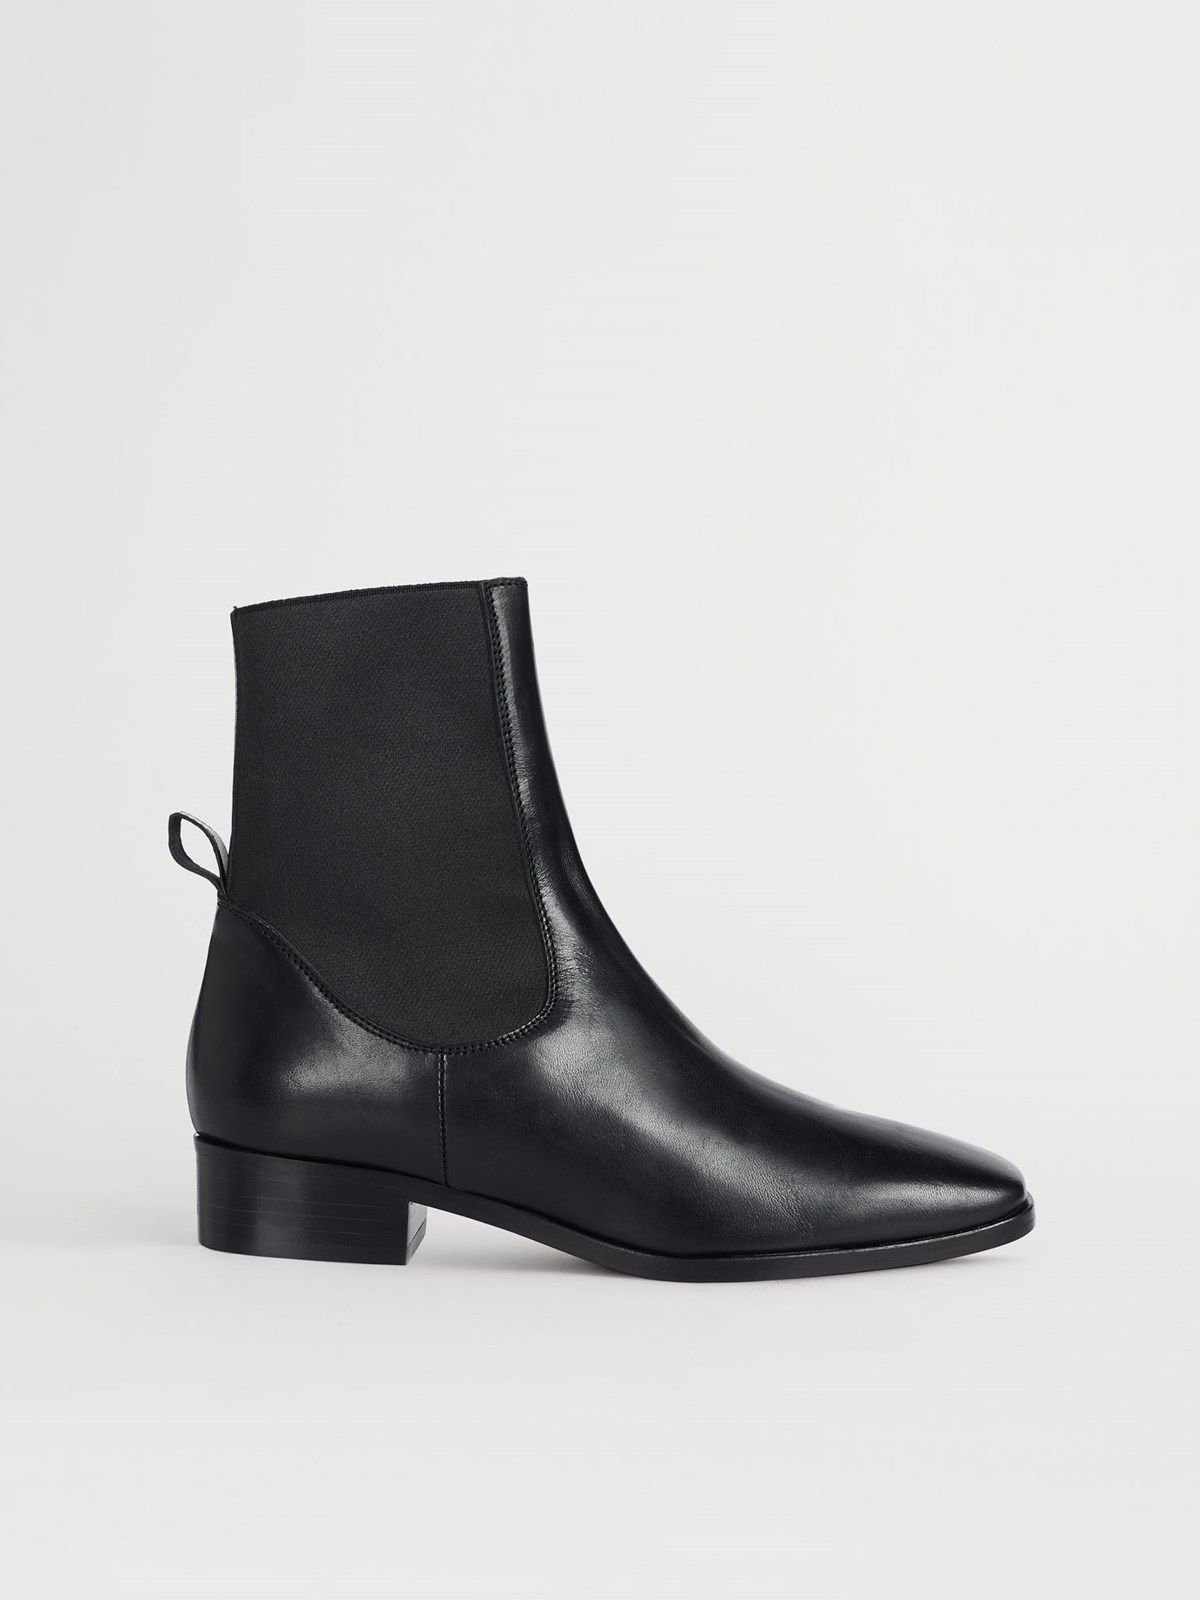 Vernazza Black Ankle Boots